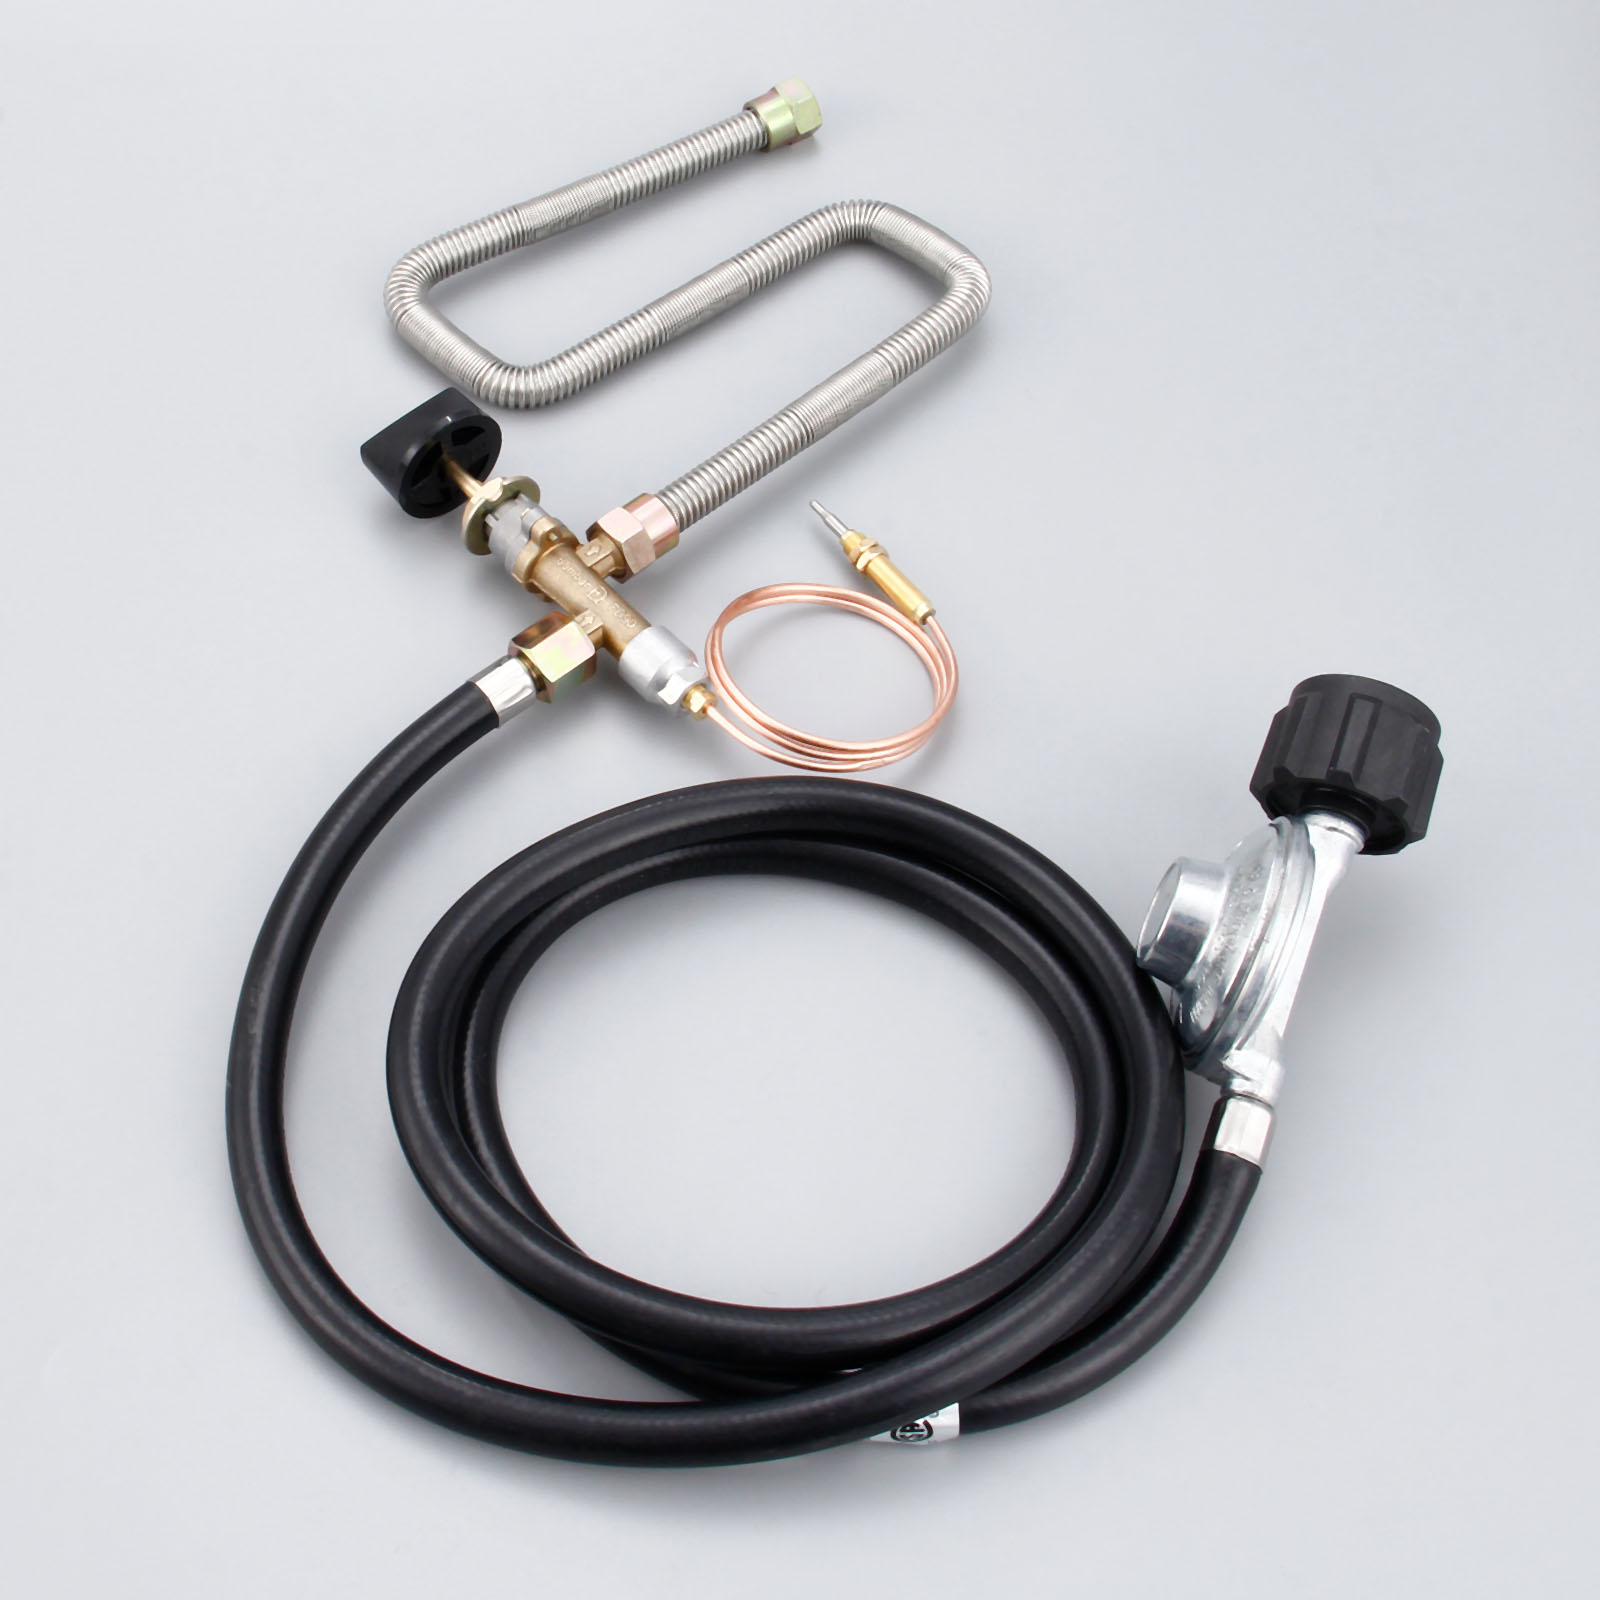 Propane Fire Pit Control Valve System Kit Fireplace Parts Gas Regulator Valve With Hose 600mm Universal M8 Thermocouple